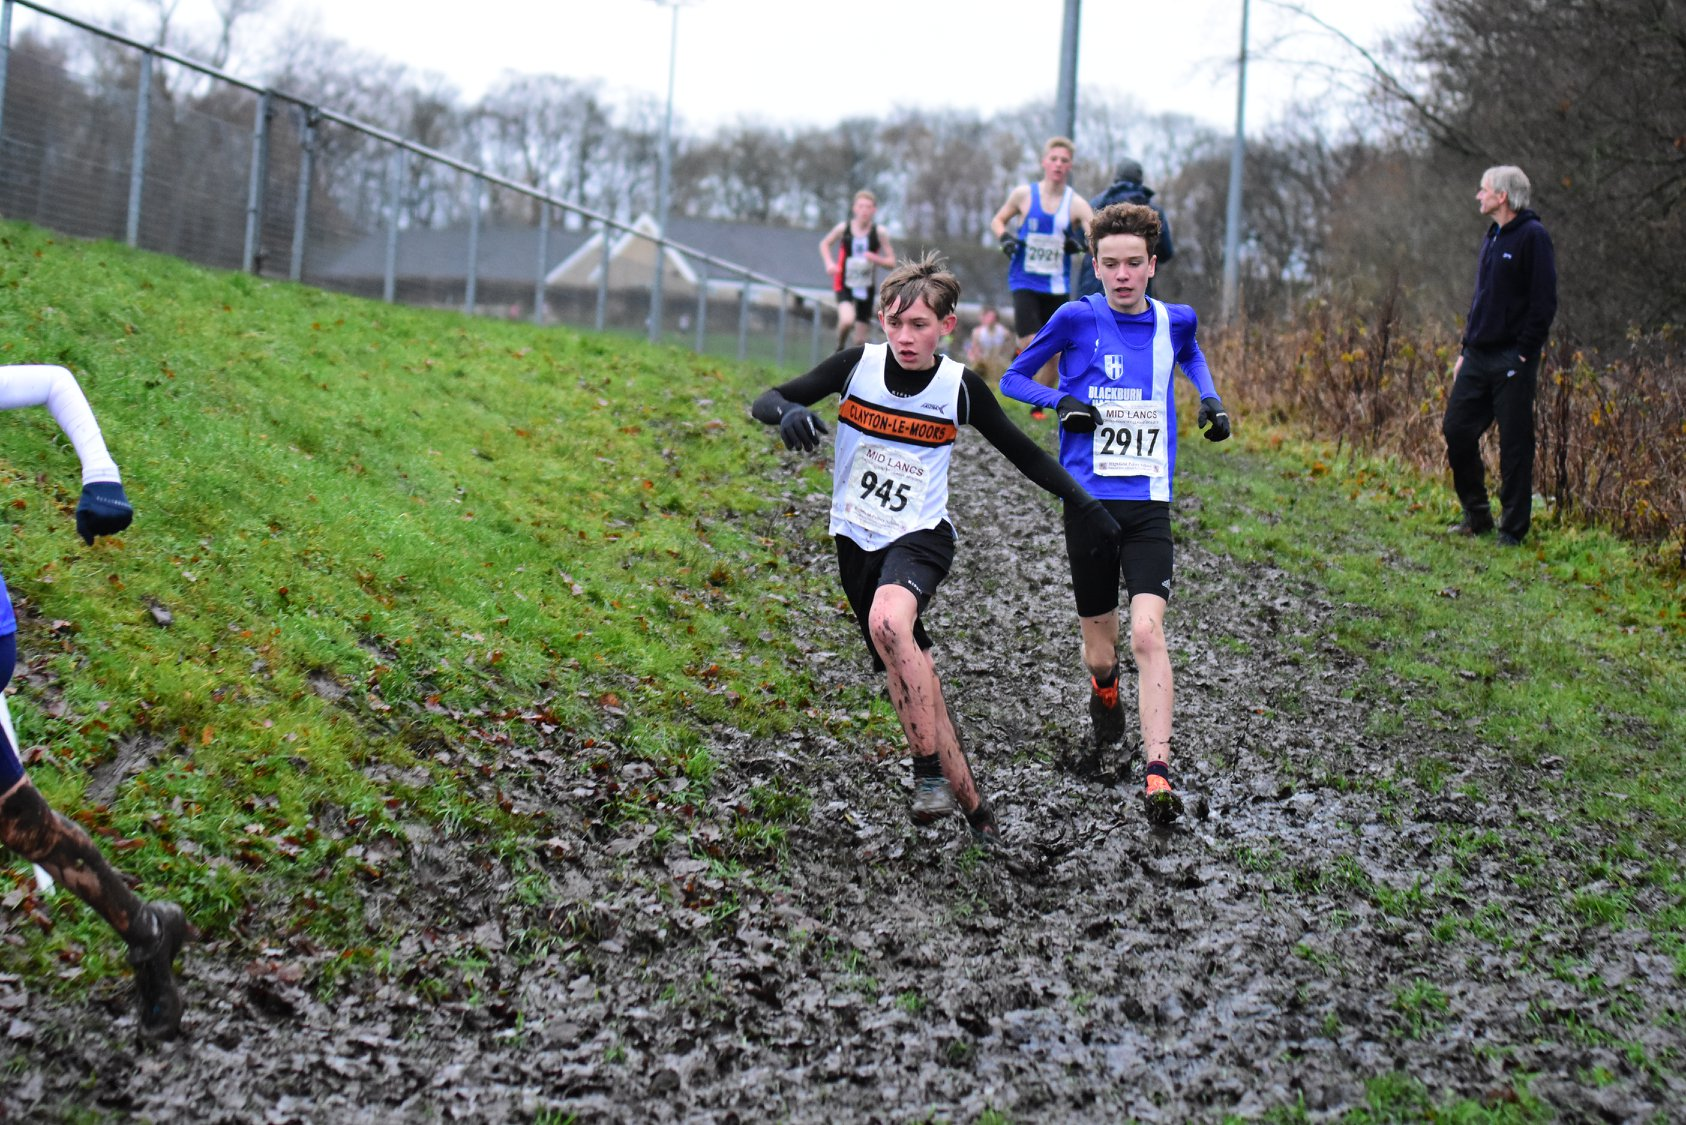 Team Wins for Senior Men – U13 Boys – U15 Girls – Matt wins U17 Race at Mid Lancs – John comes 3rd at Longridge 7